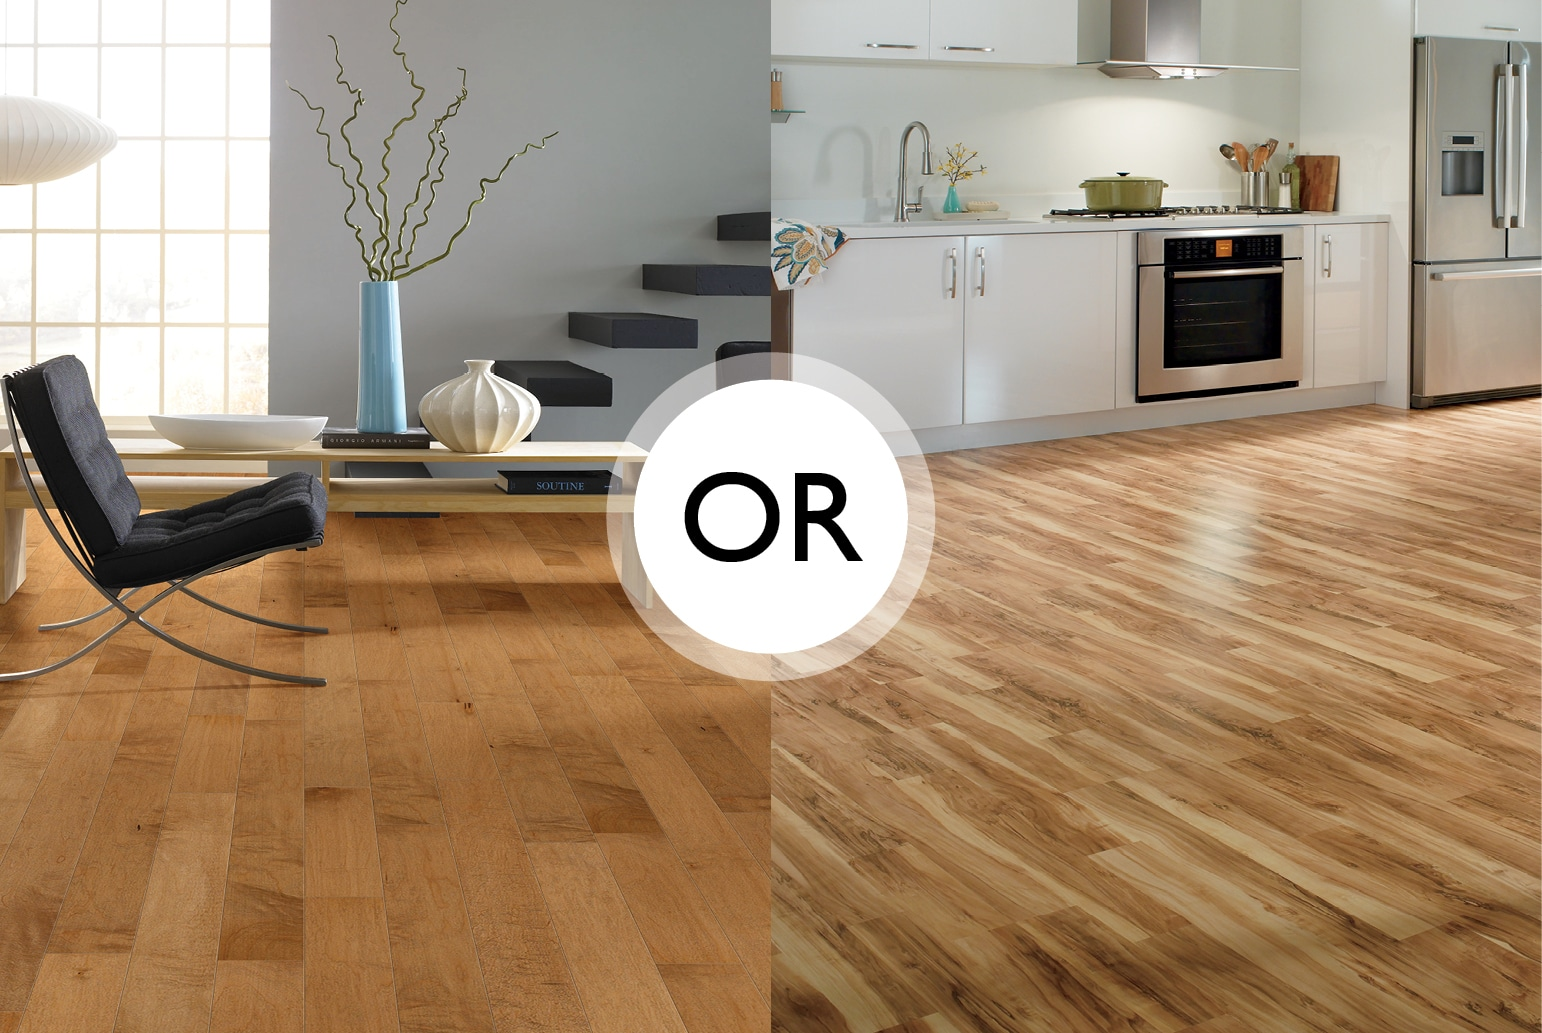 Hardwood vs laminate flooring the basics innovation - Laminate versus hardwood flooring ...